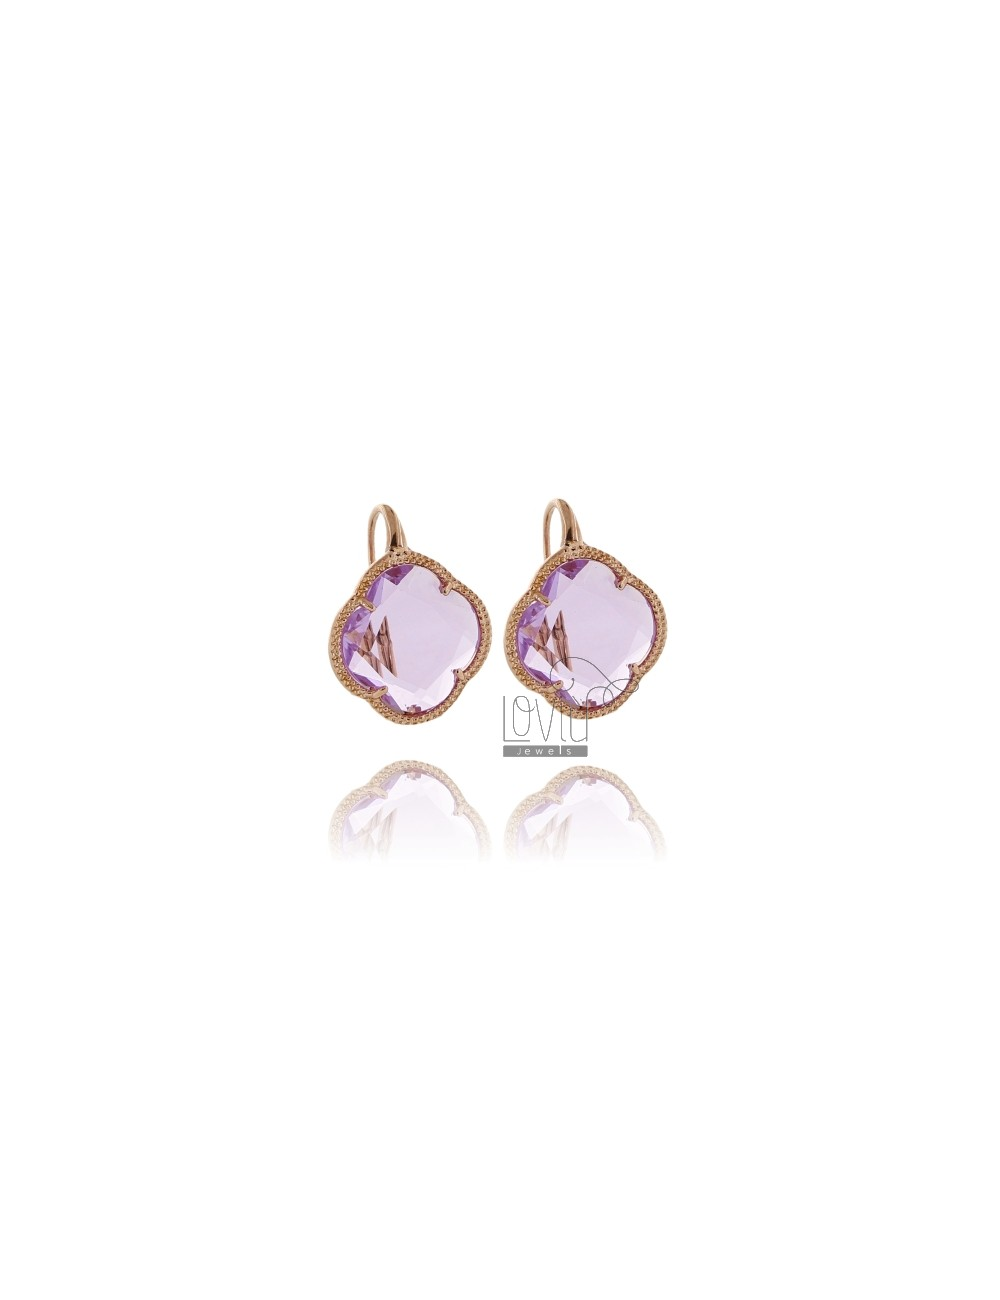 LOAD TRANSPARENT PINK FLOWER EARRINGS IN ROSE GOLD PLATED AG 925 TIT AND STONES HYDROTHERMAL